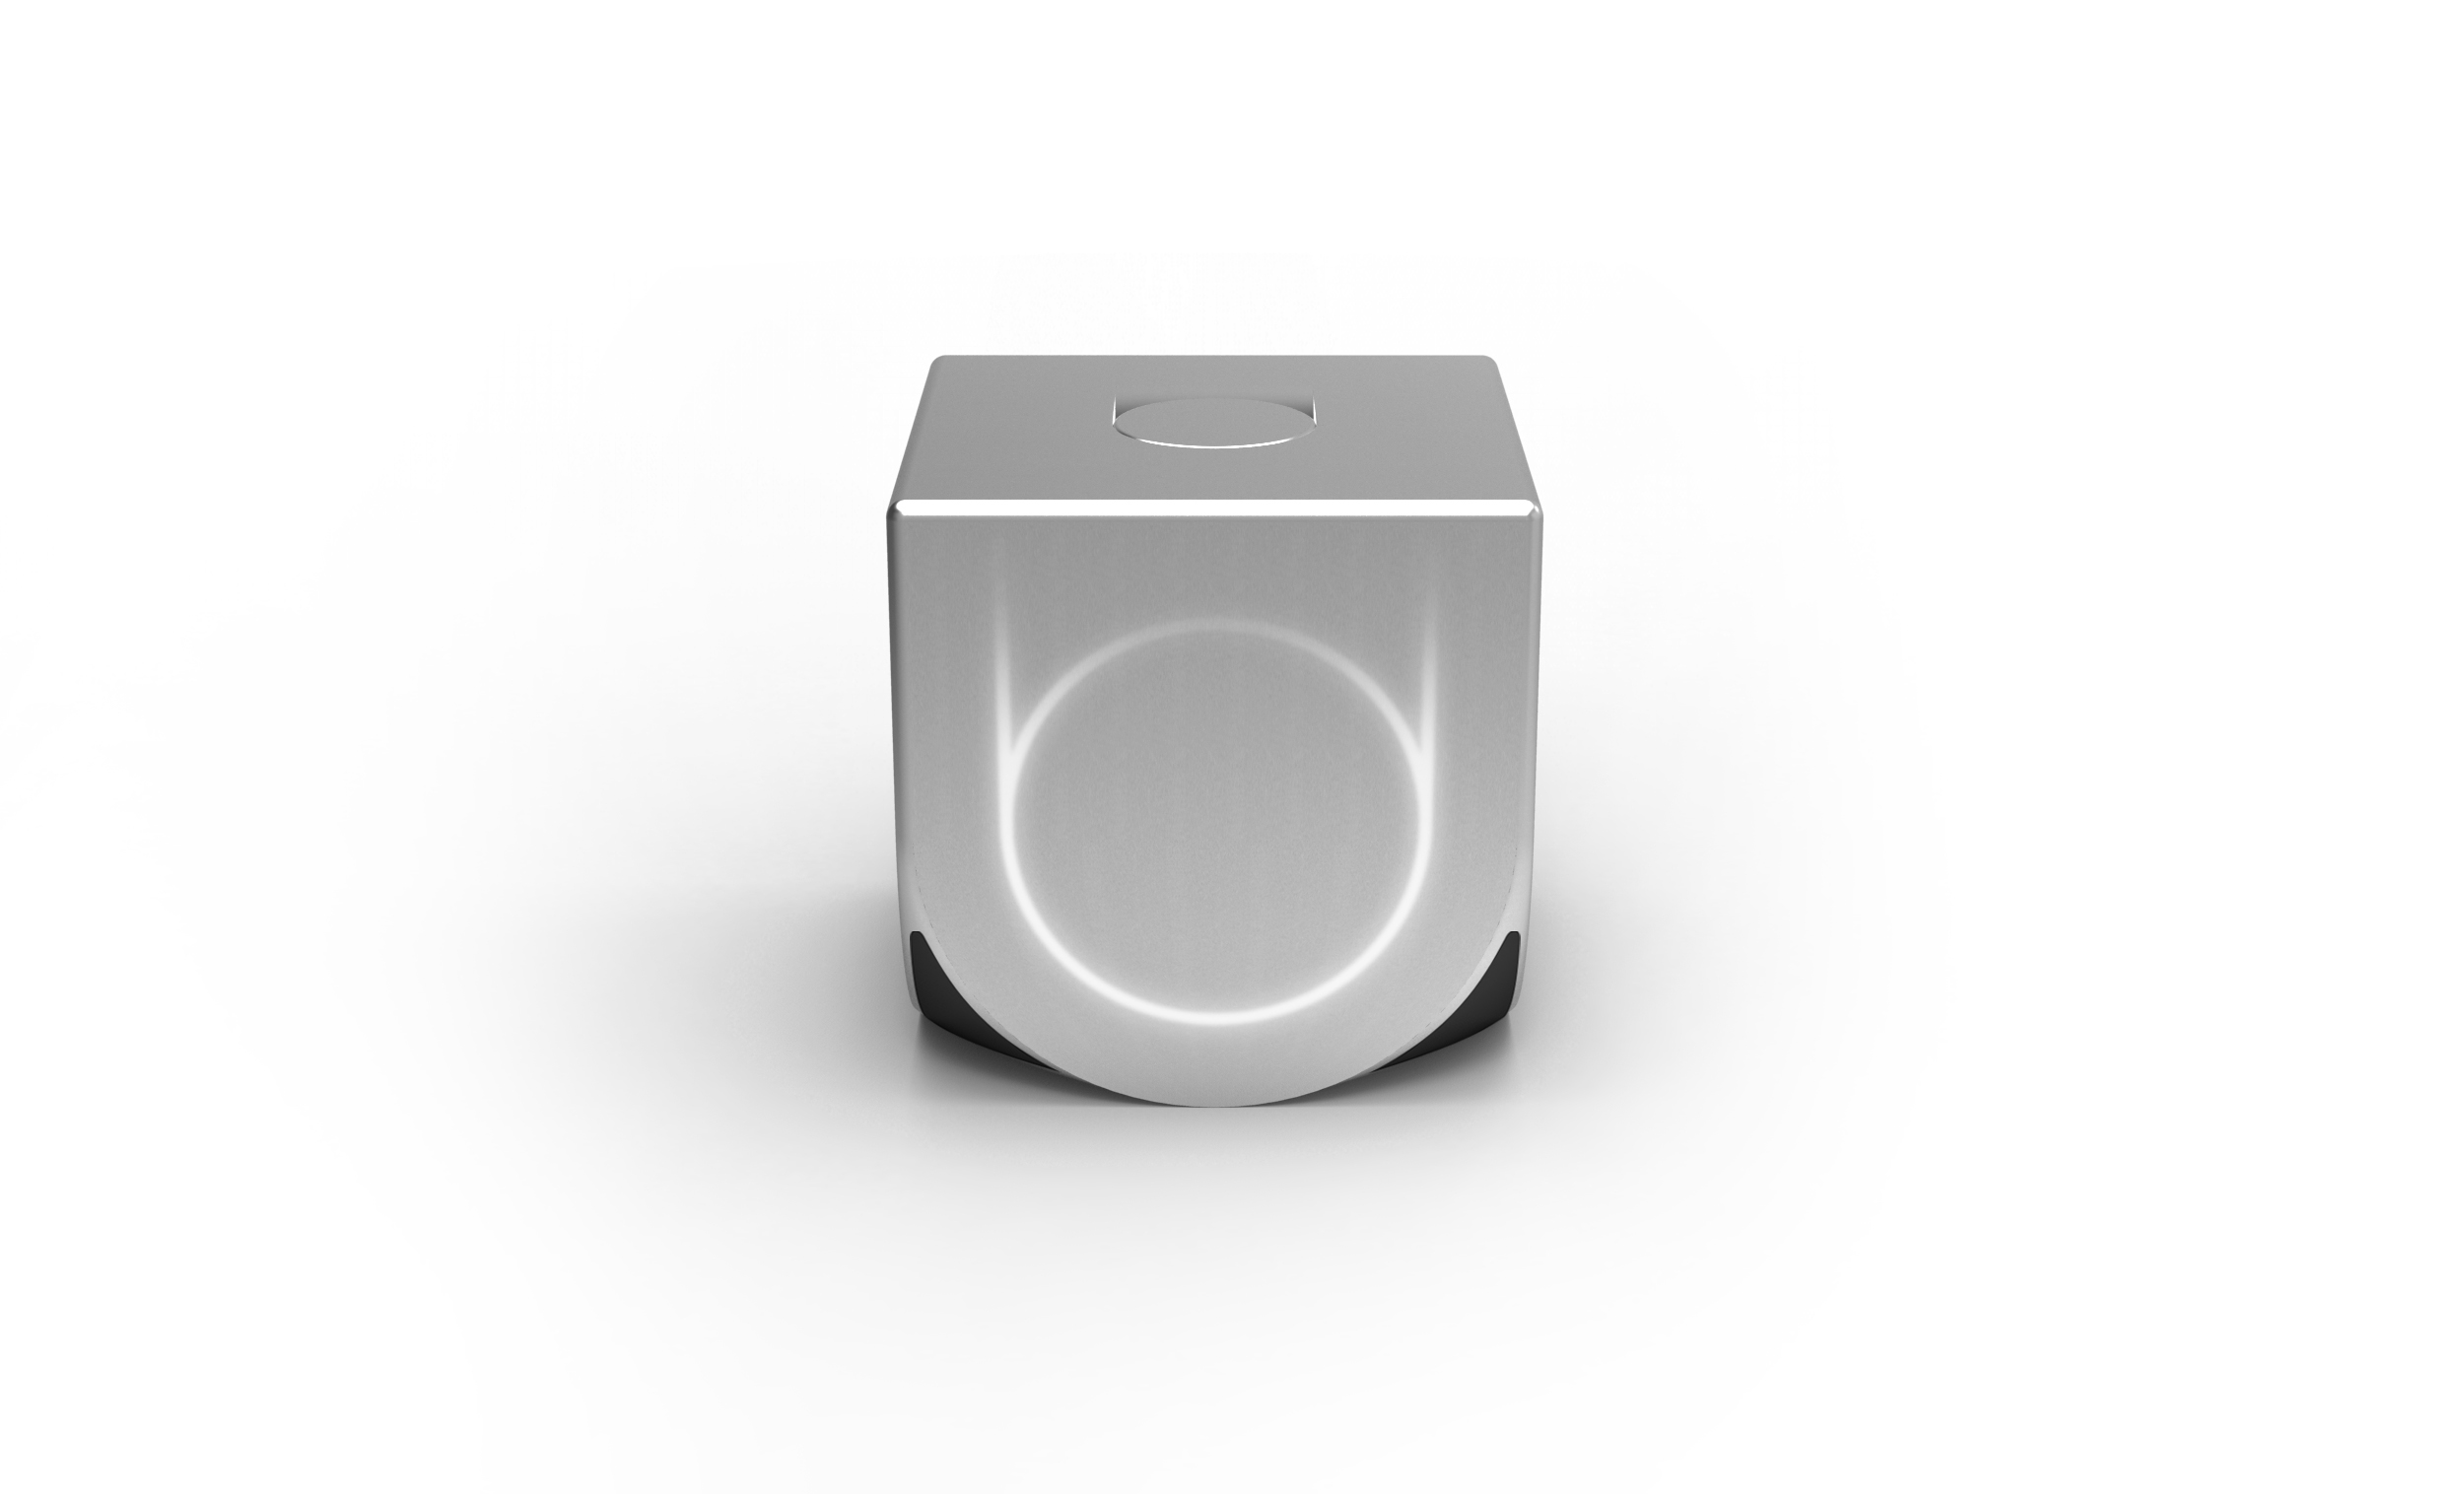 gaming console OUYA will Ouya Console